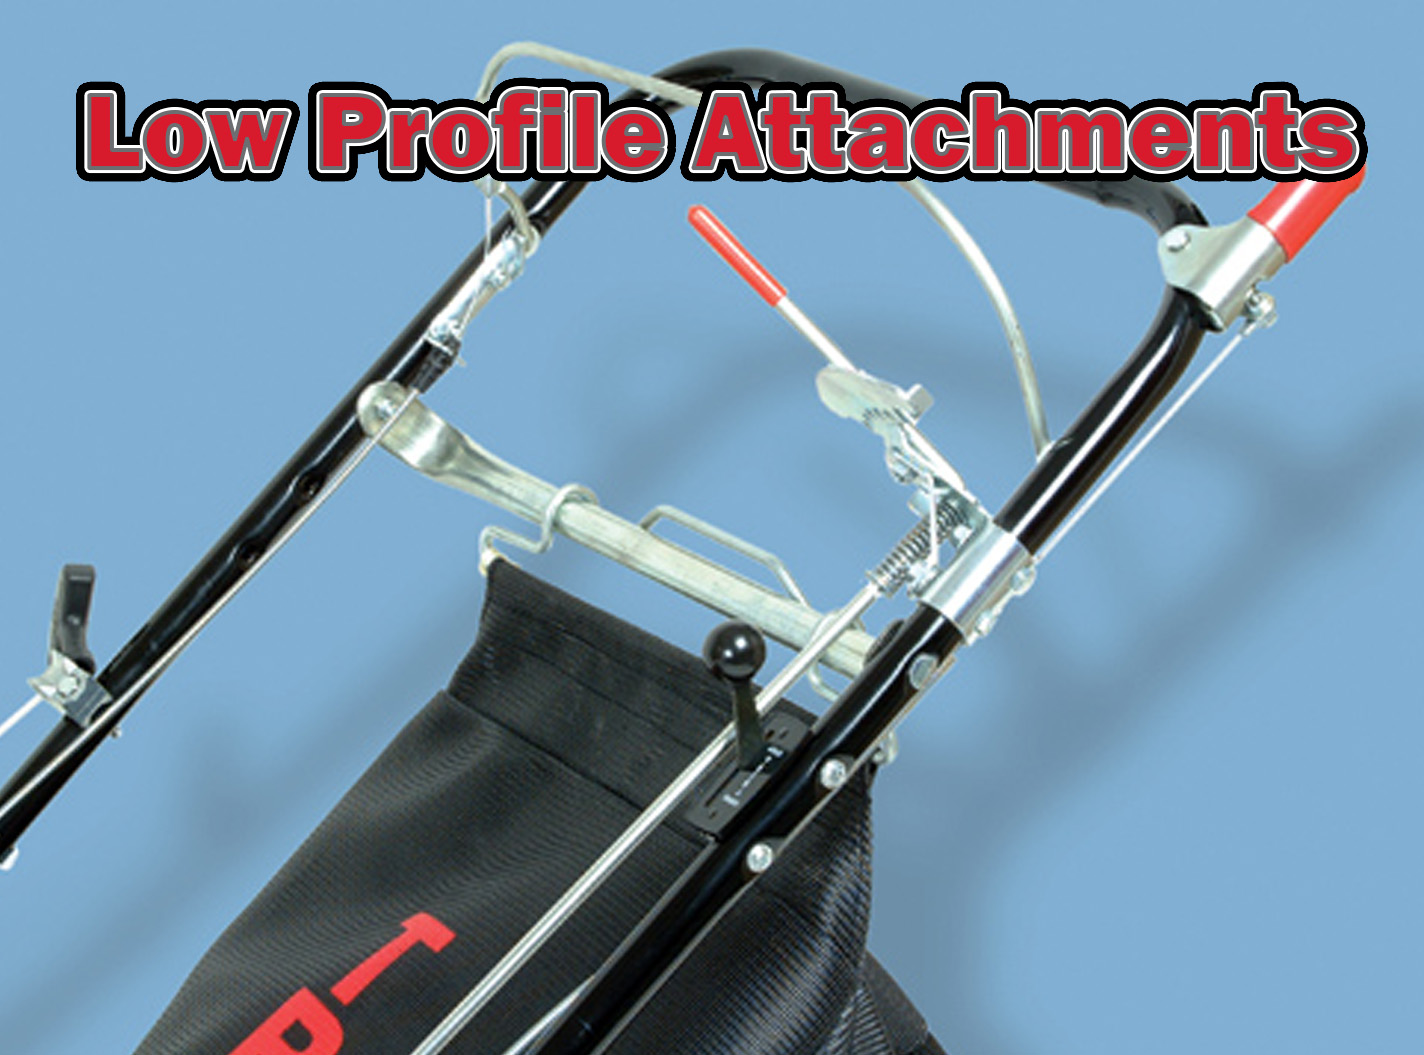 Low Profile Attachments  Lawn Mowers Parts and Service